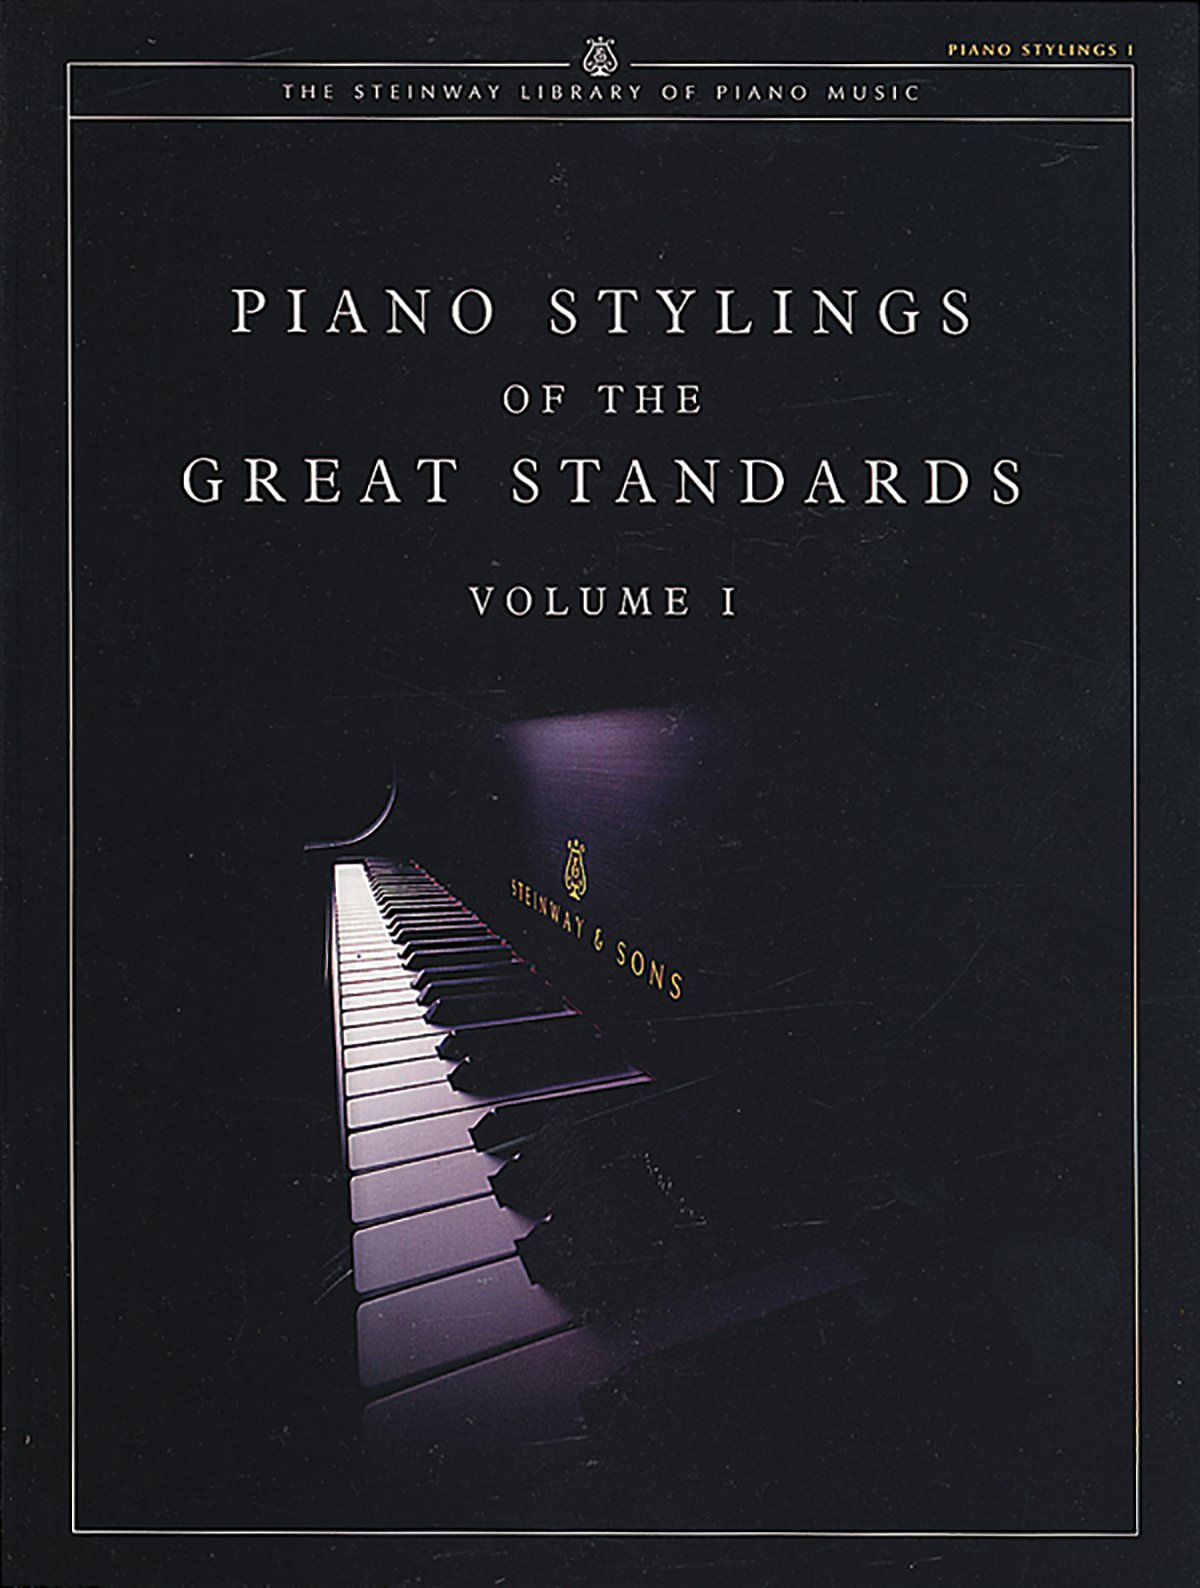 Piano Stylings of the Great Standards, Vol 1 (The Steinway Library of Piano Music) pdf epub